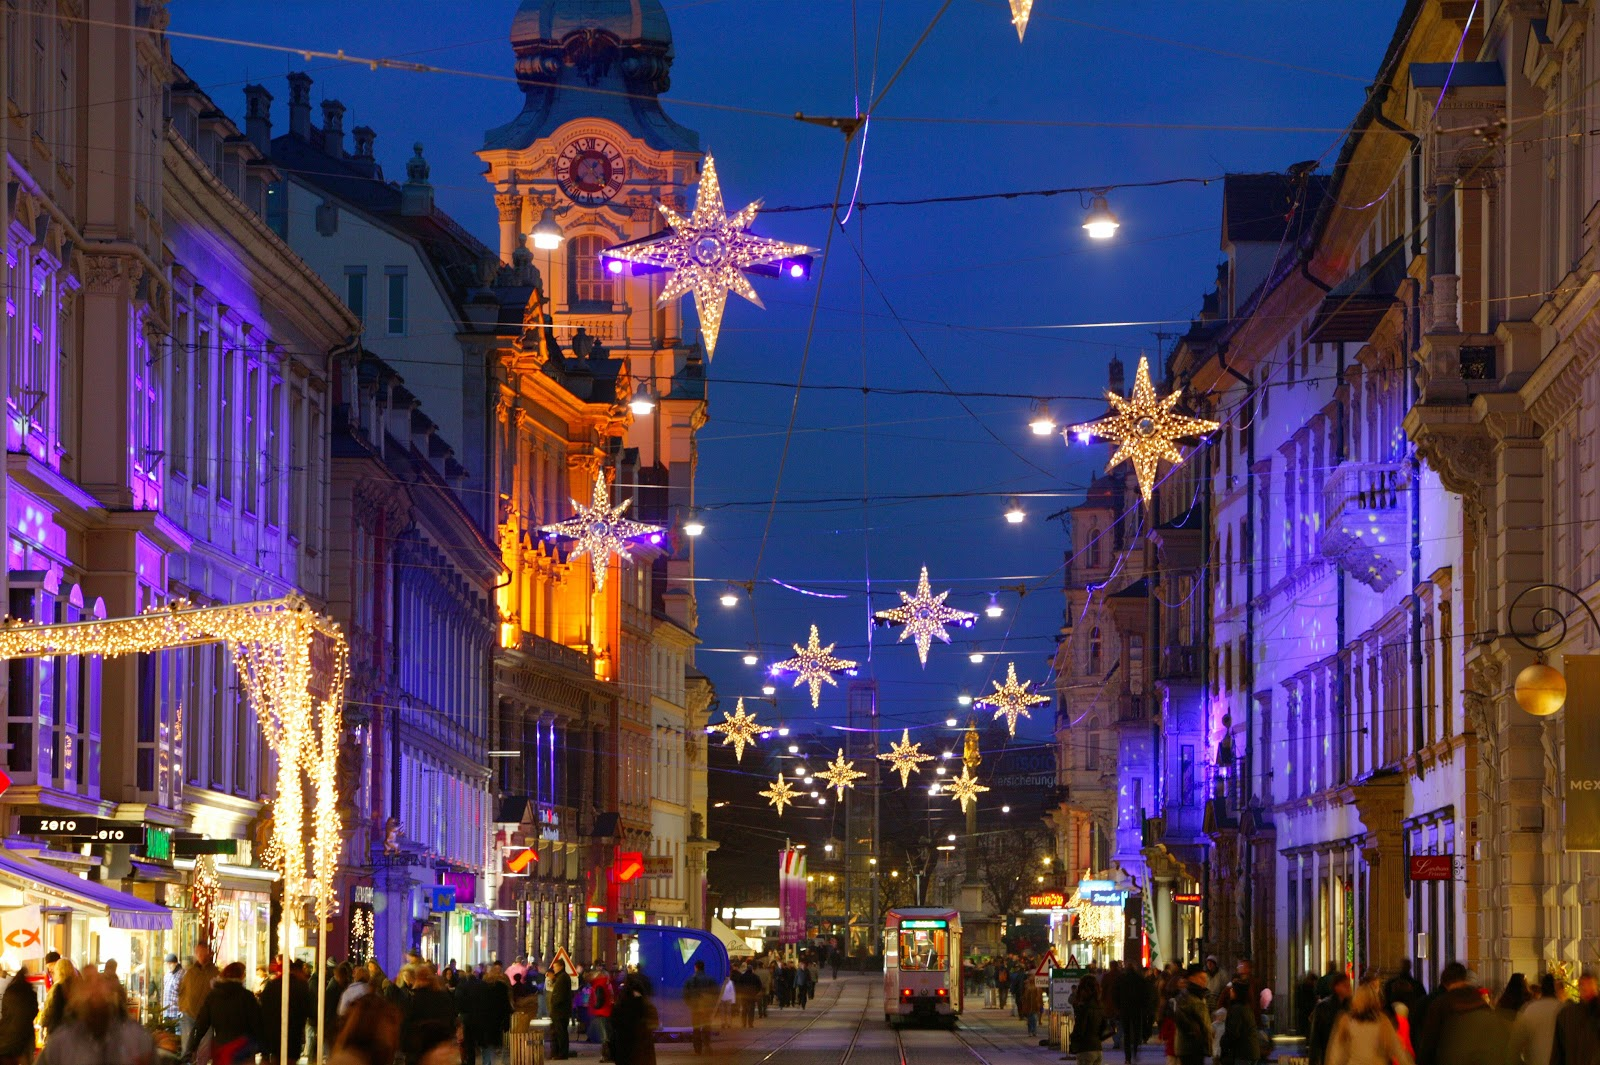 It's Christmastime in the enchanting city of Graz. Photo: © Graz Tourismus. Unauthorized use is prohibited.